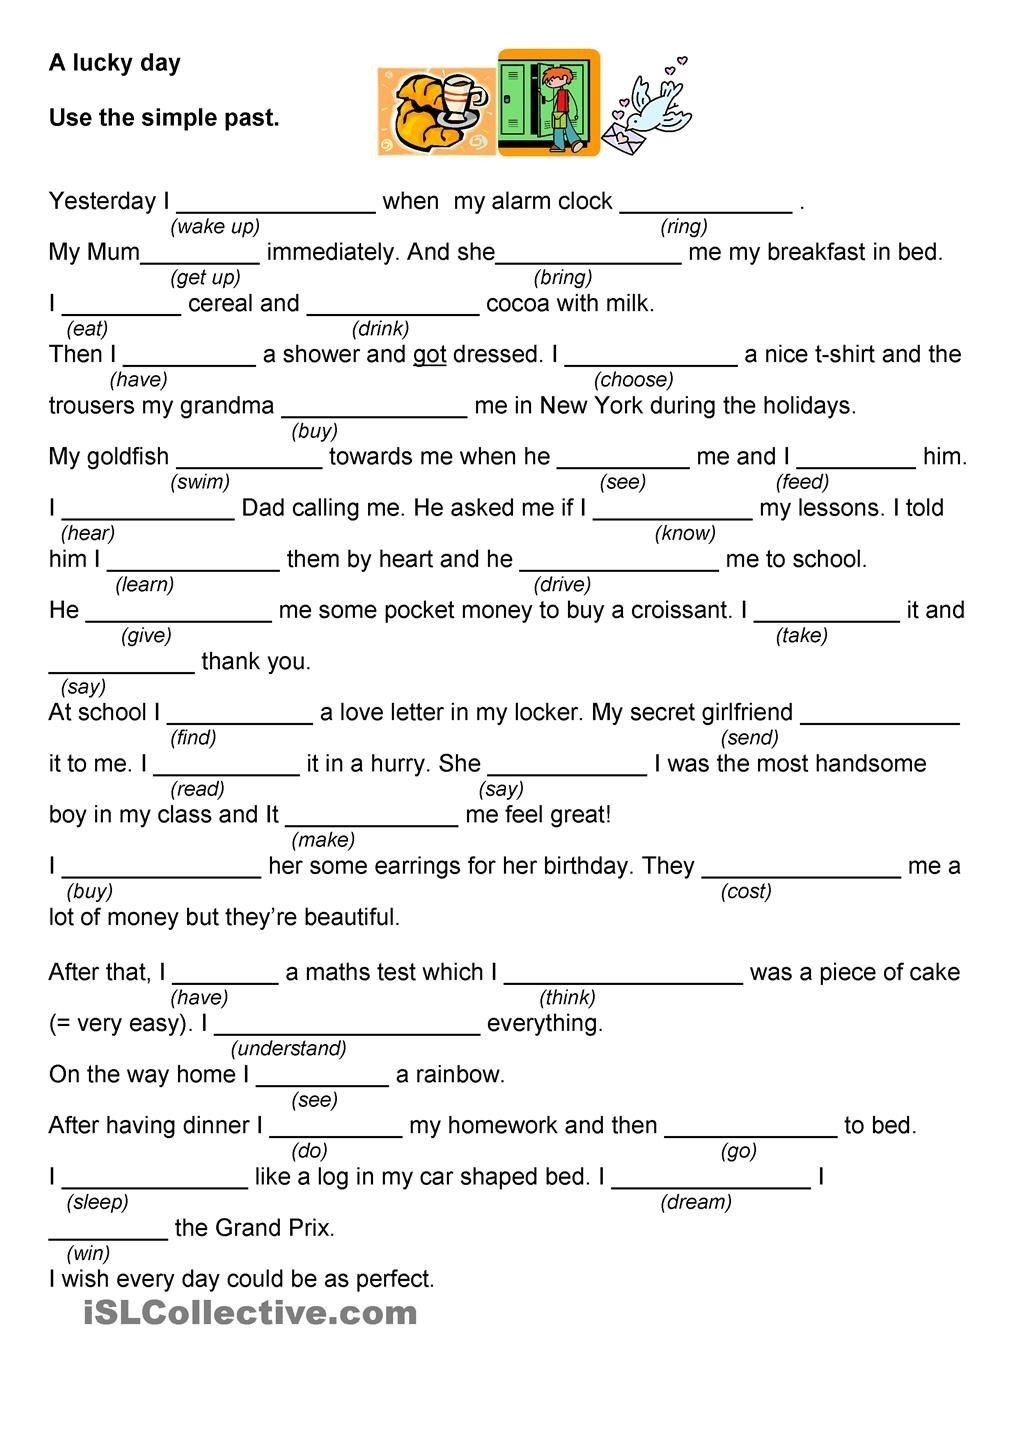 Grammar Worksheets Middle School Pdf A Lucky Day A Bad Day